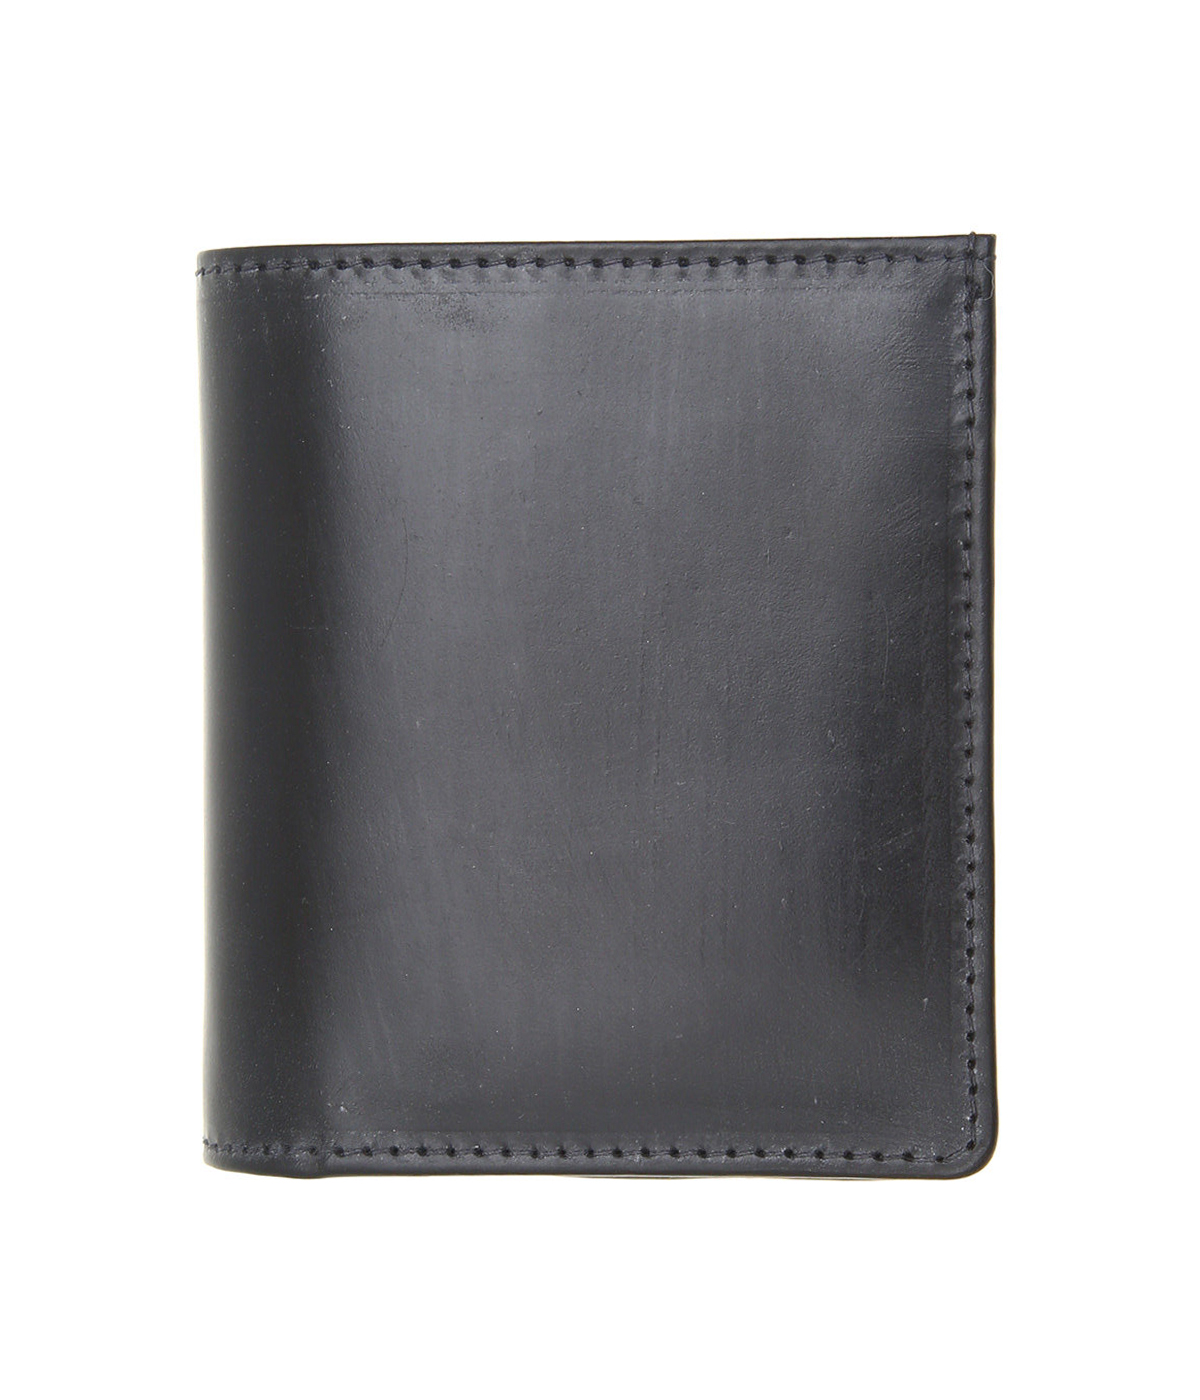 BRIDLE COMPACT WALLET